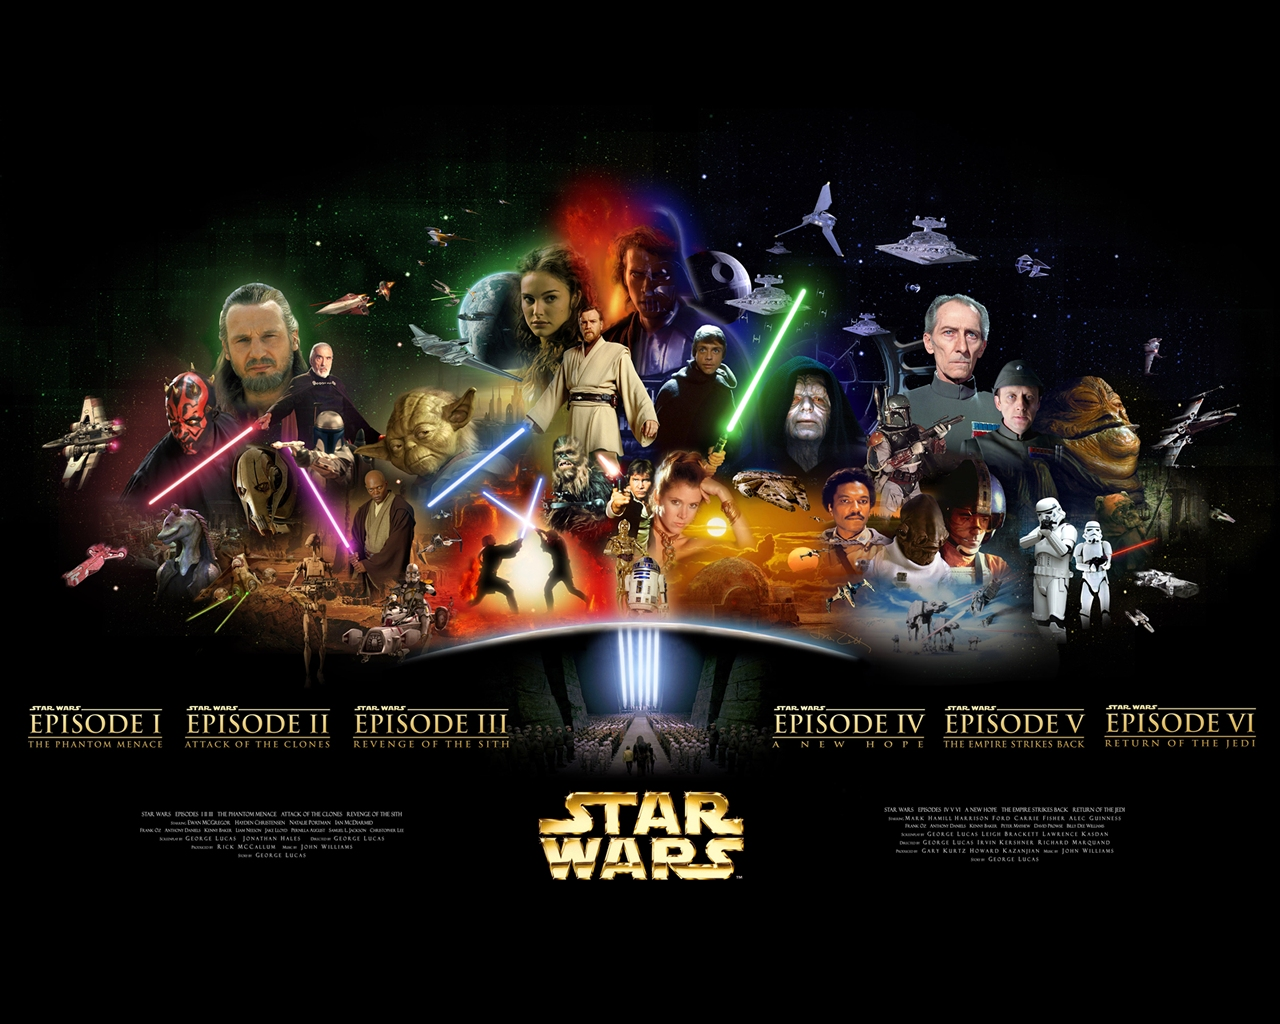 star wars animated wallpaper 1280x1024